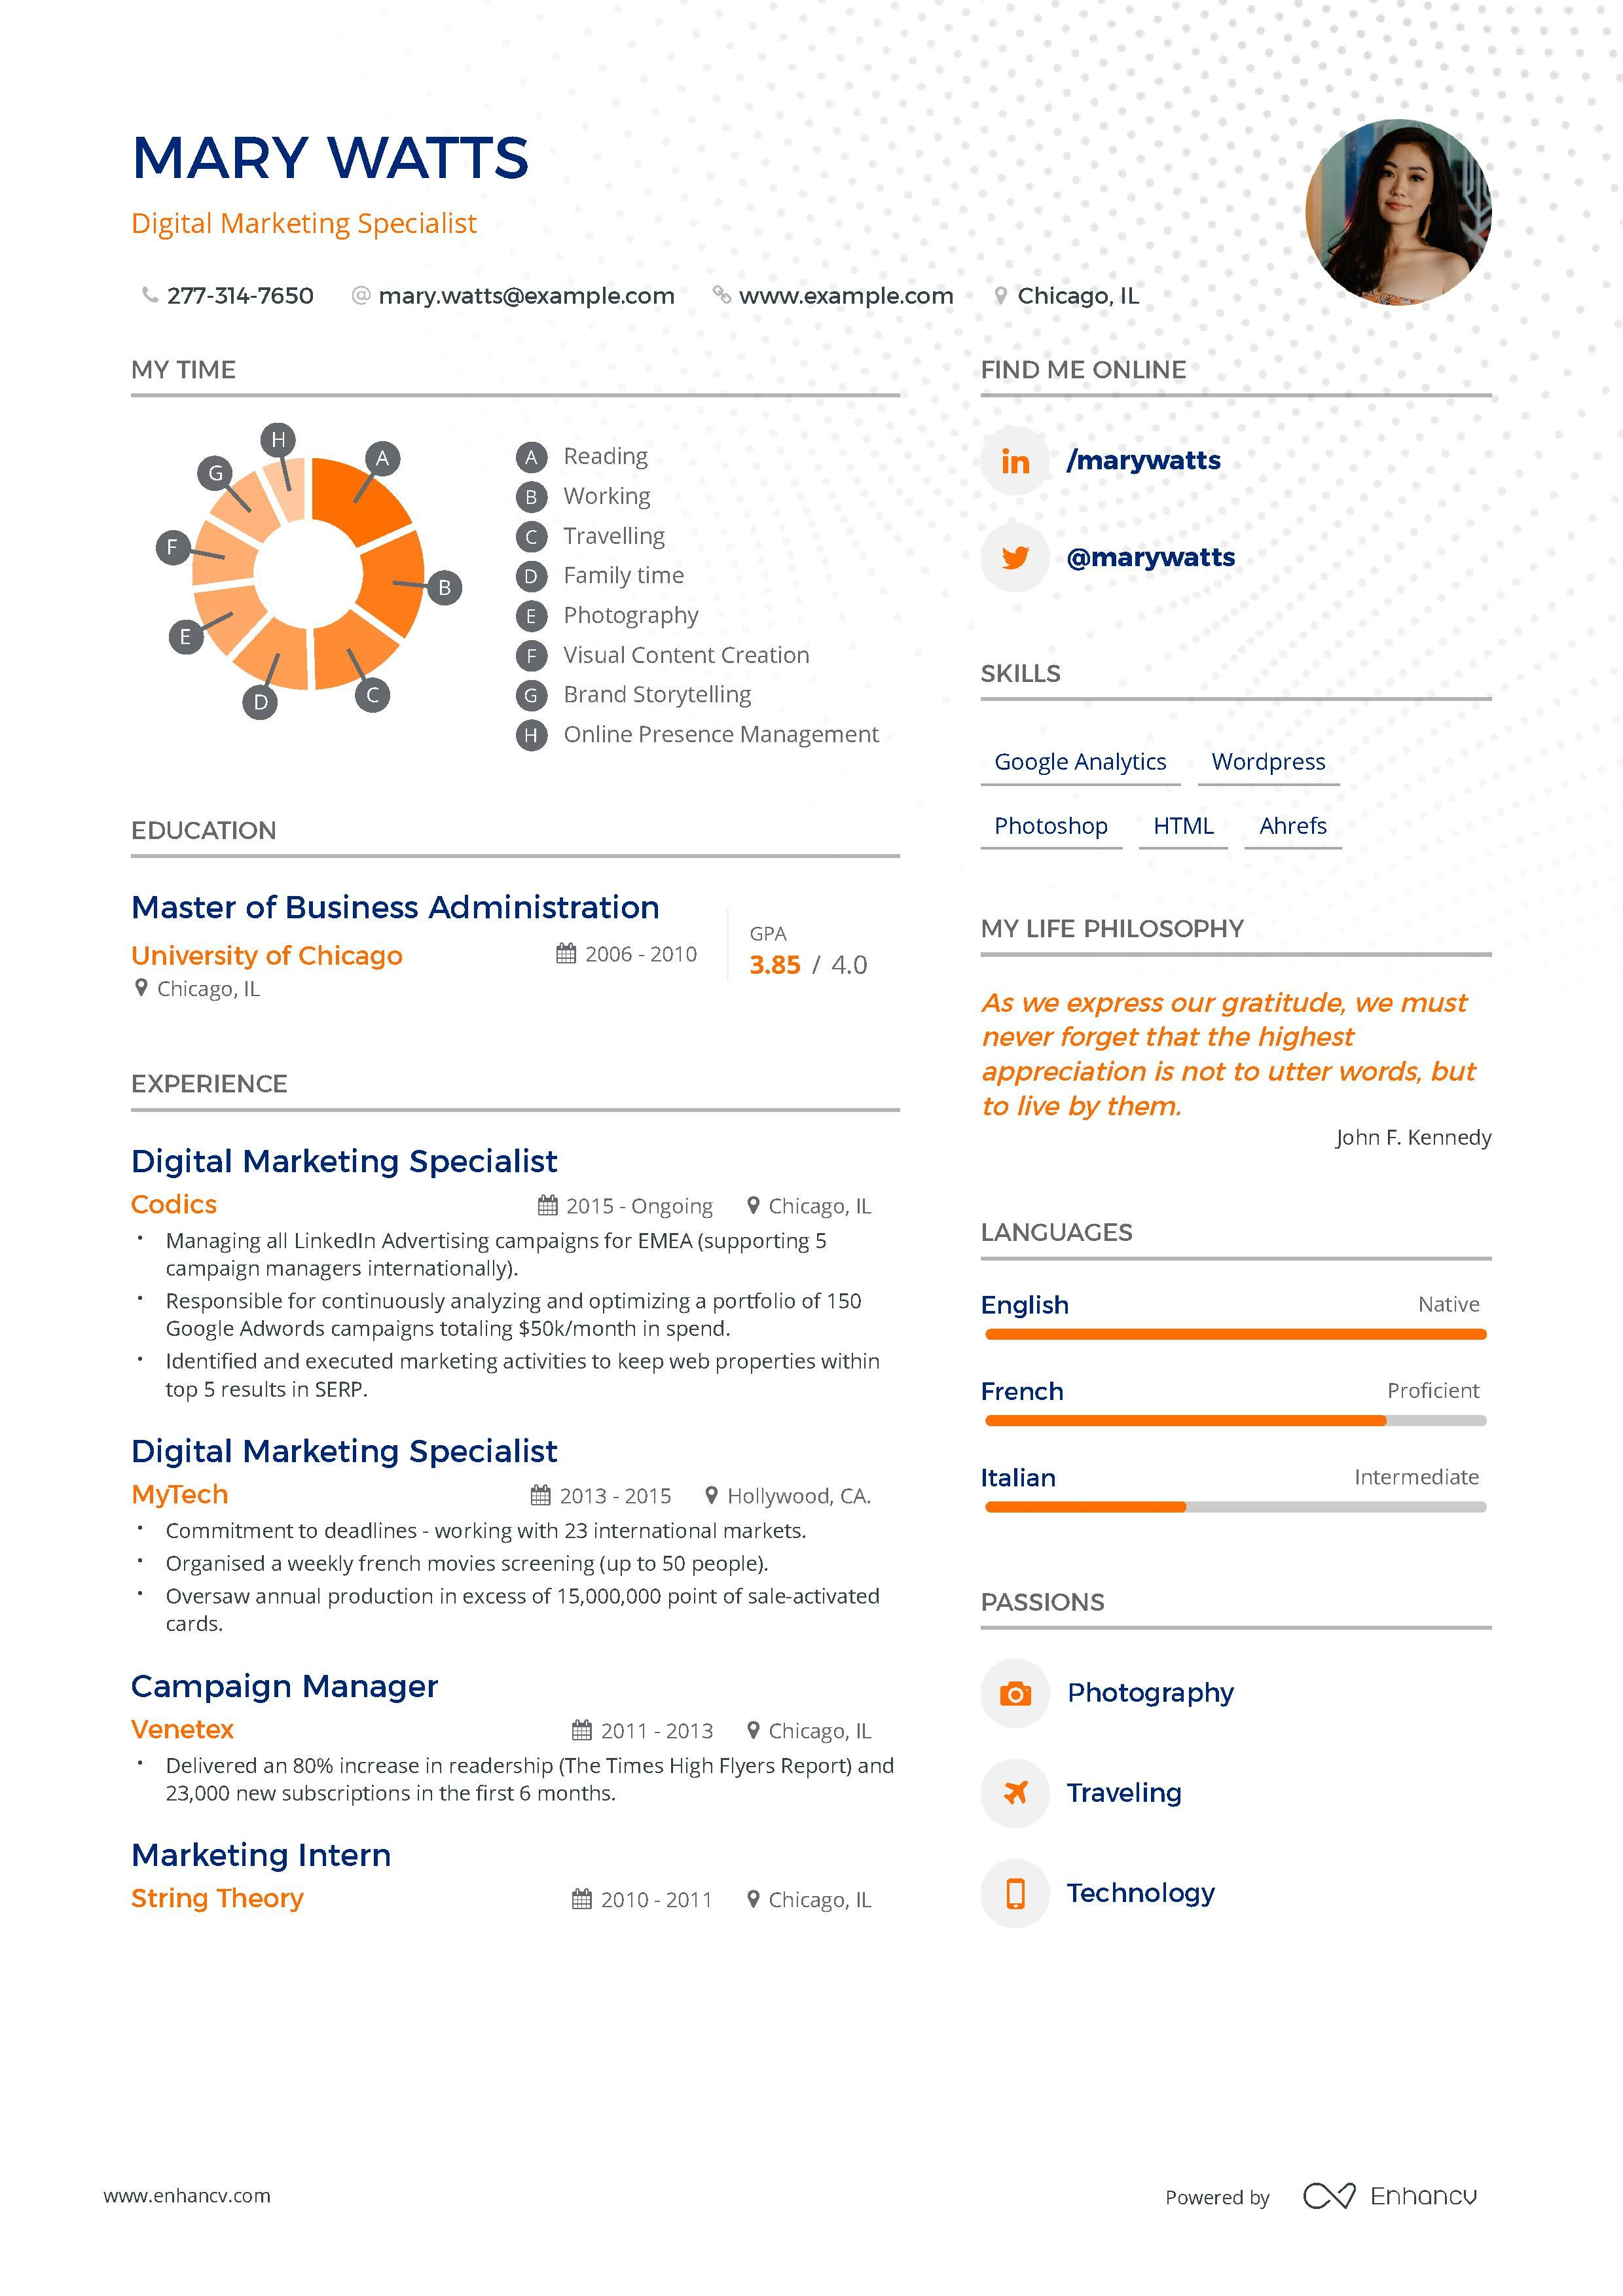 Digital Marketing Resume Example And Guide For 2019 Marketing Resume Resume Examples Digital Marketing